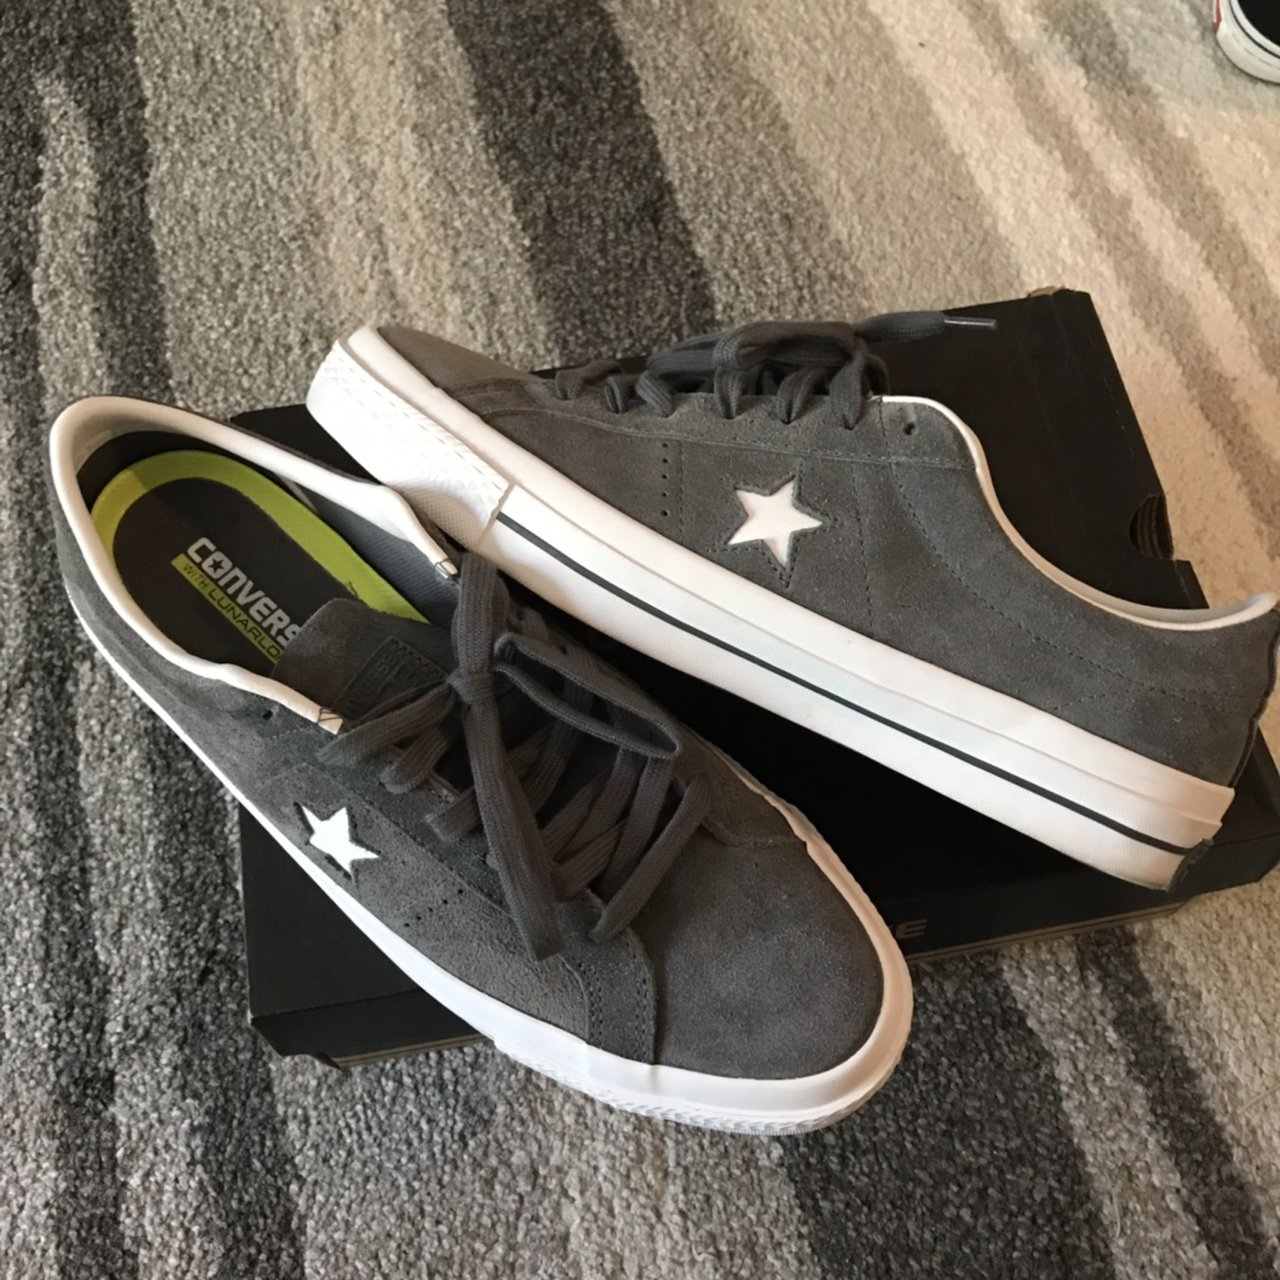 ff8d085ce80e Converse one star suede OX skate shoe. Size 10.5. Worn once - Depop